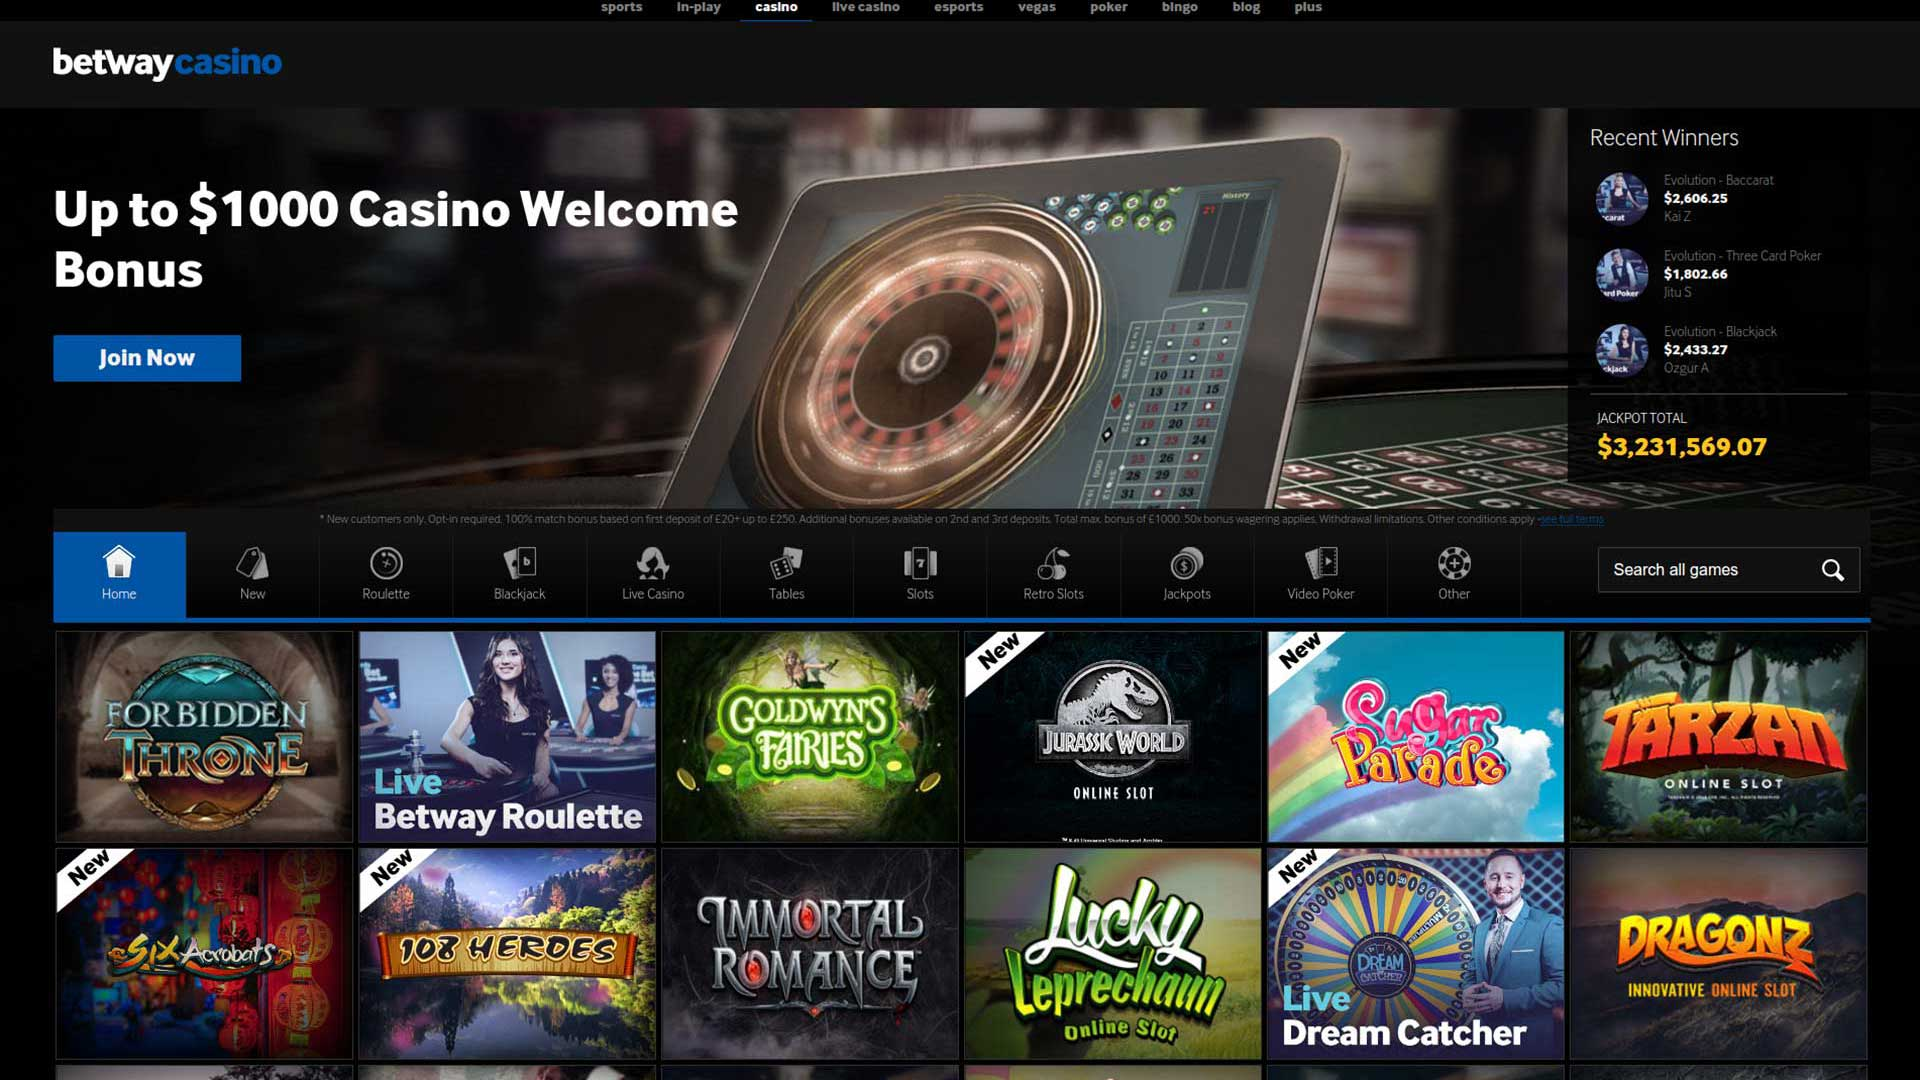 Betway Casino - Bonuses and Free Spins